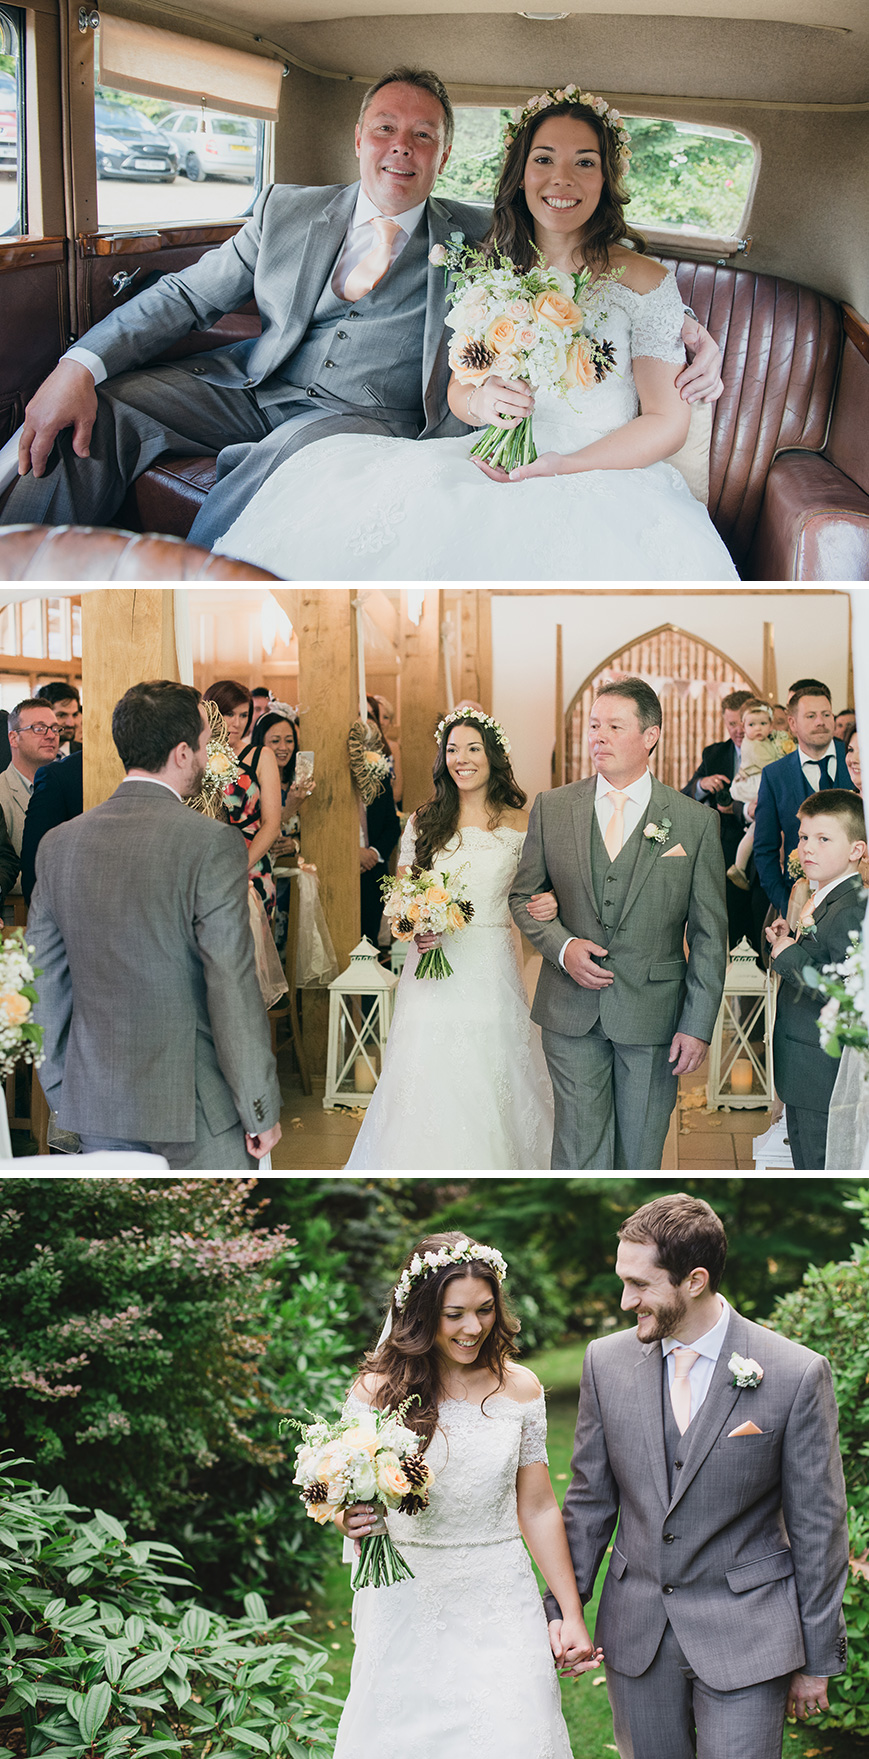 Real Wedding - Natalie and Tony's Vintage Country Wedding At Rivervale Barn | CHWV